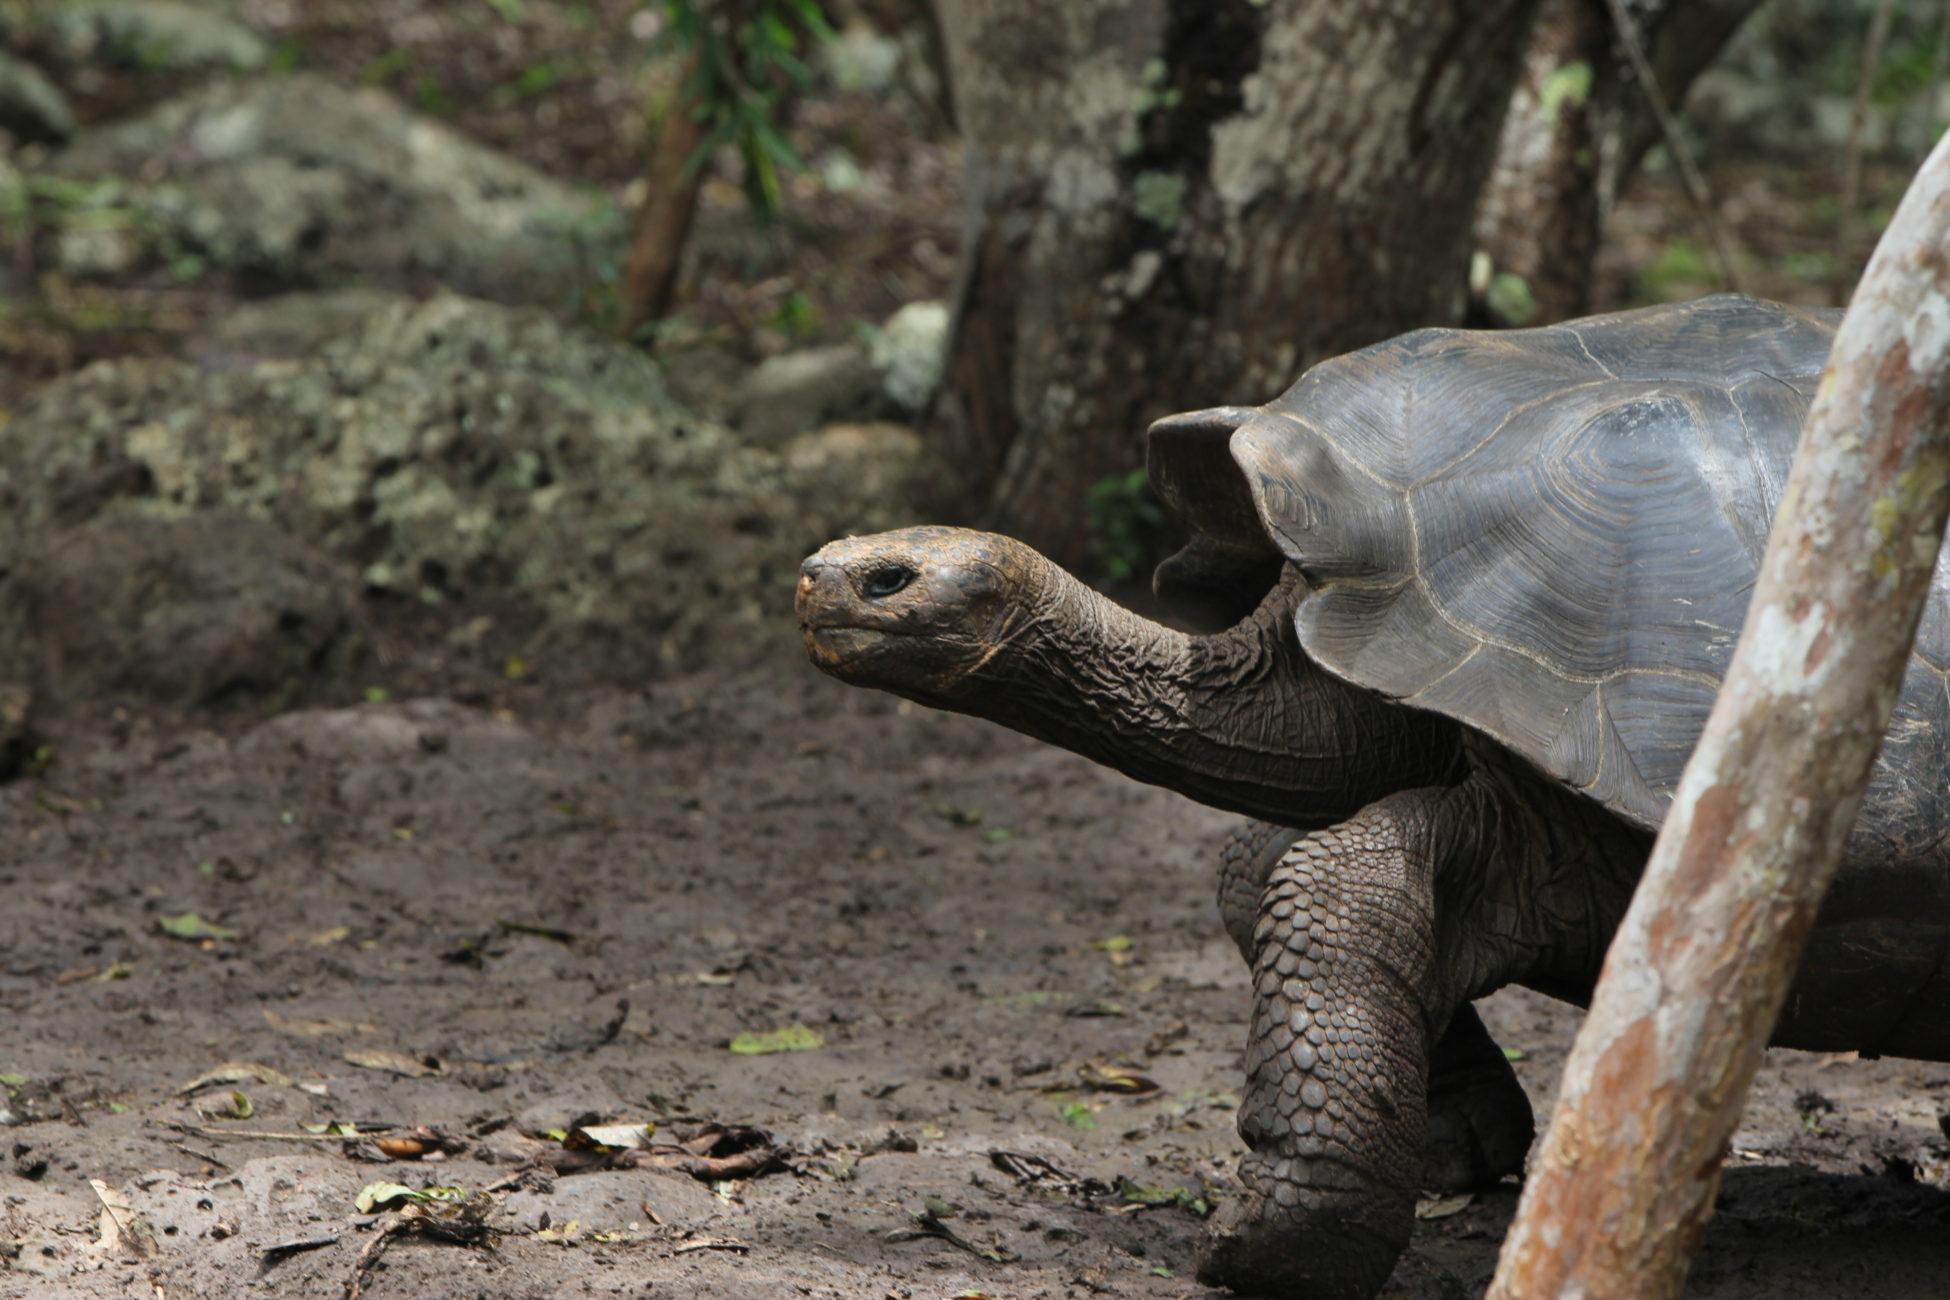 A Galápagos giant tortoise strolls through the forest